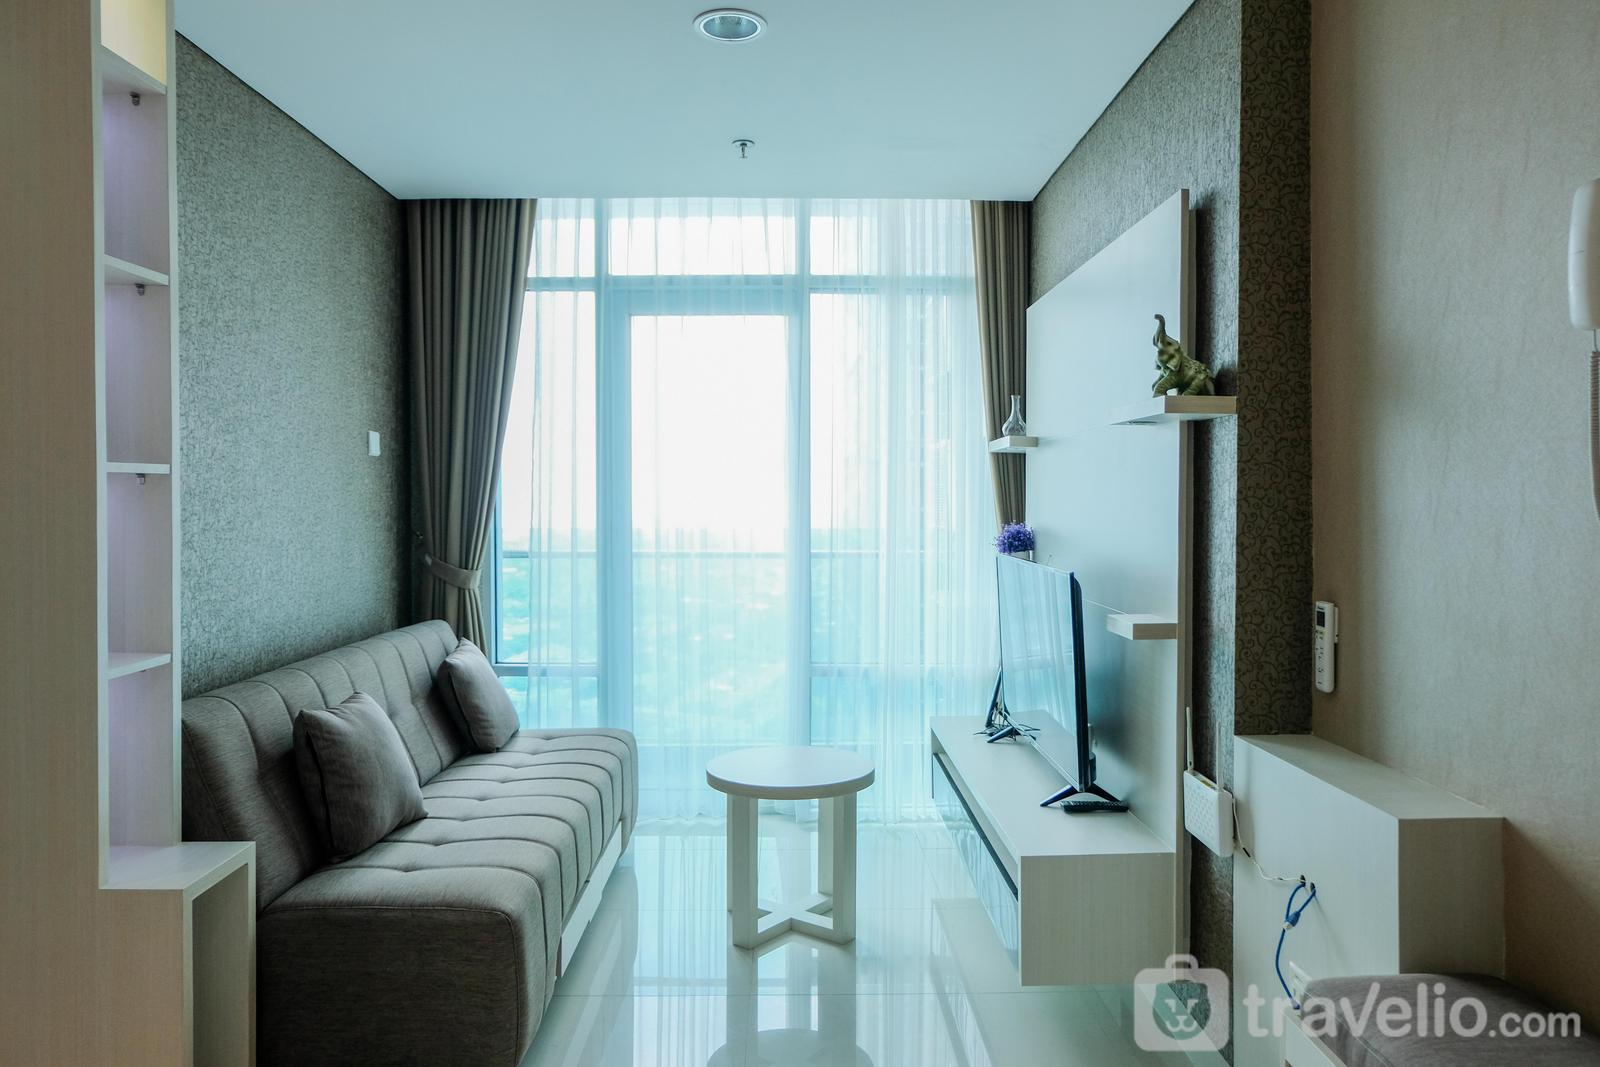 Brooklyn Apartment Alam Sutera - Luxurious 2BR Brooklyn Apartment By Travelio